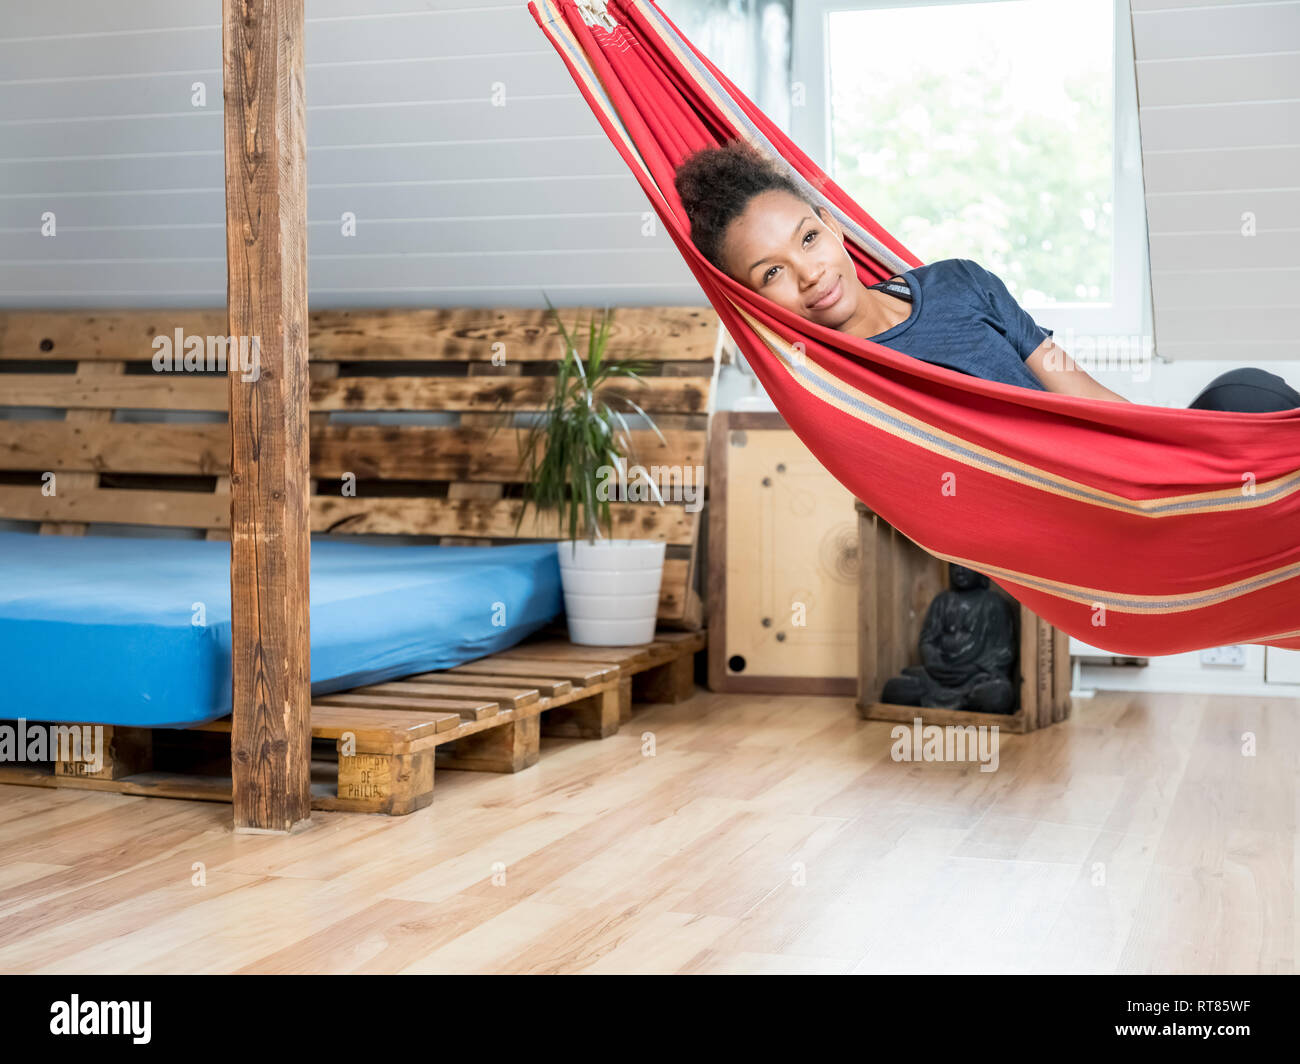 Smiling young woman lying in hammock - Stock Image